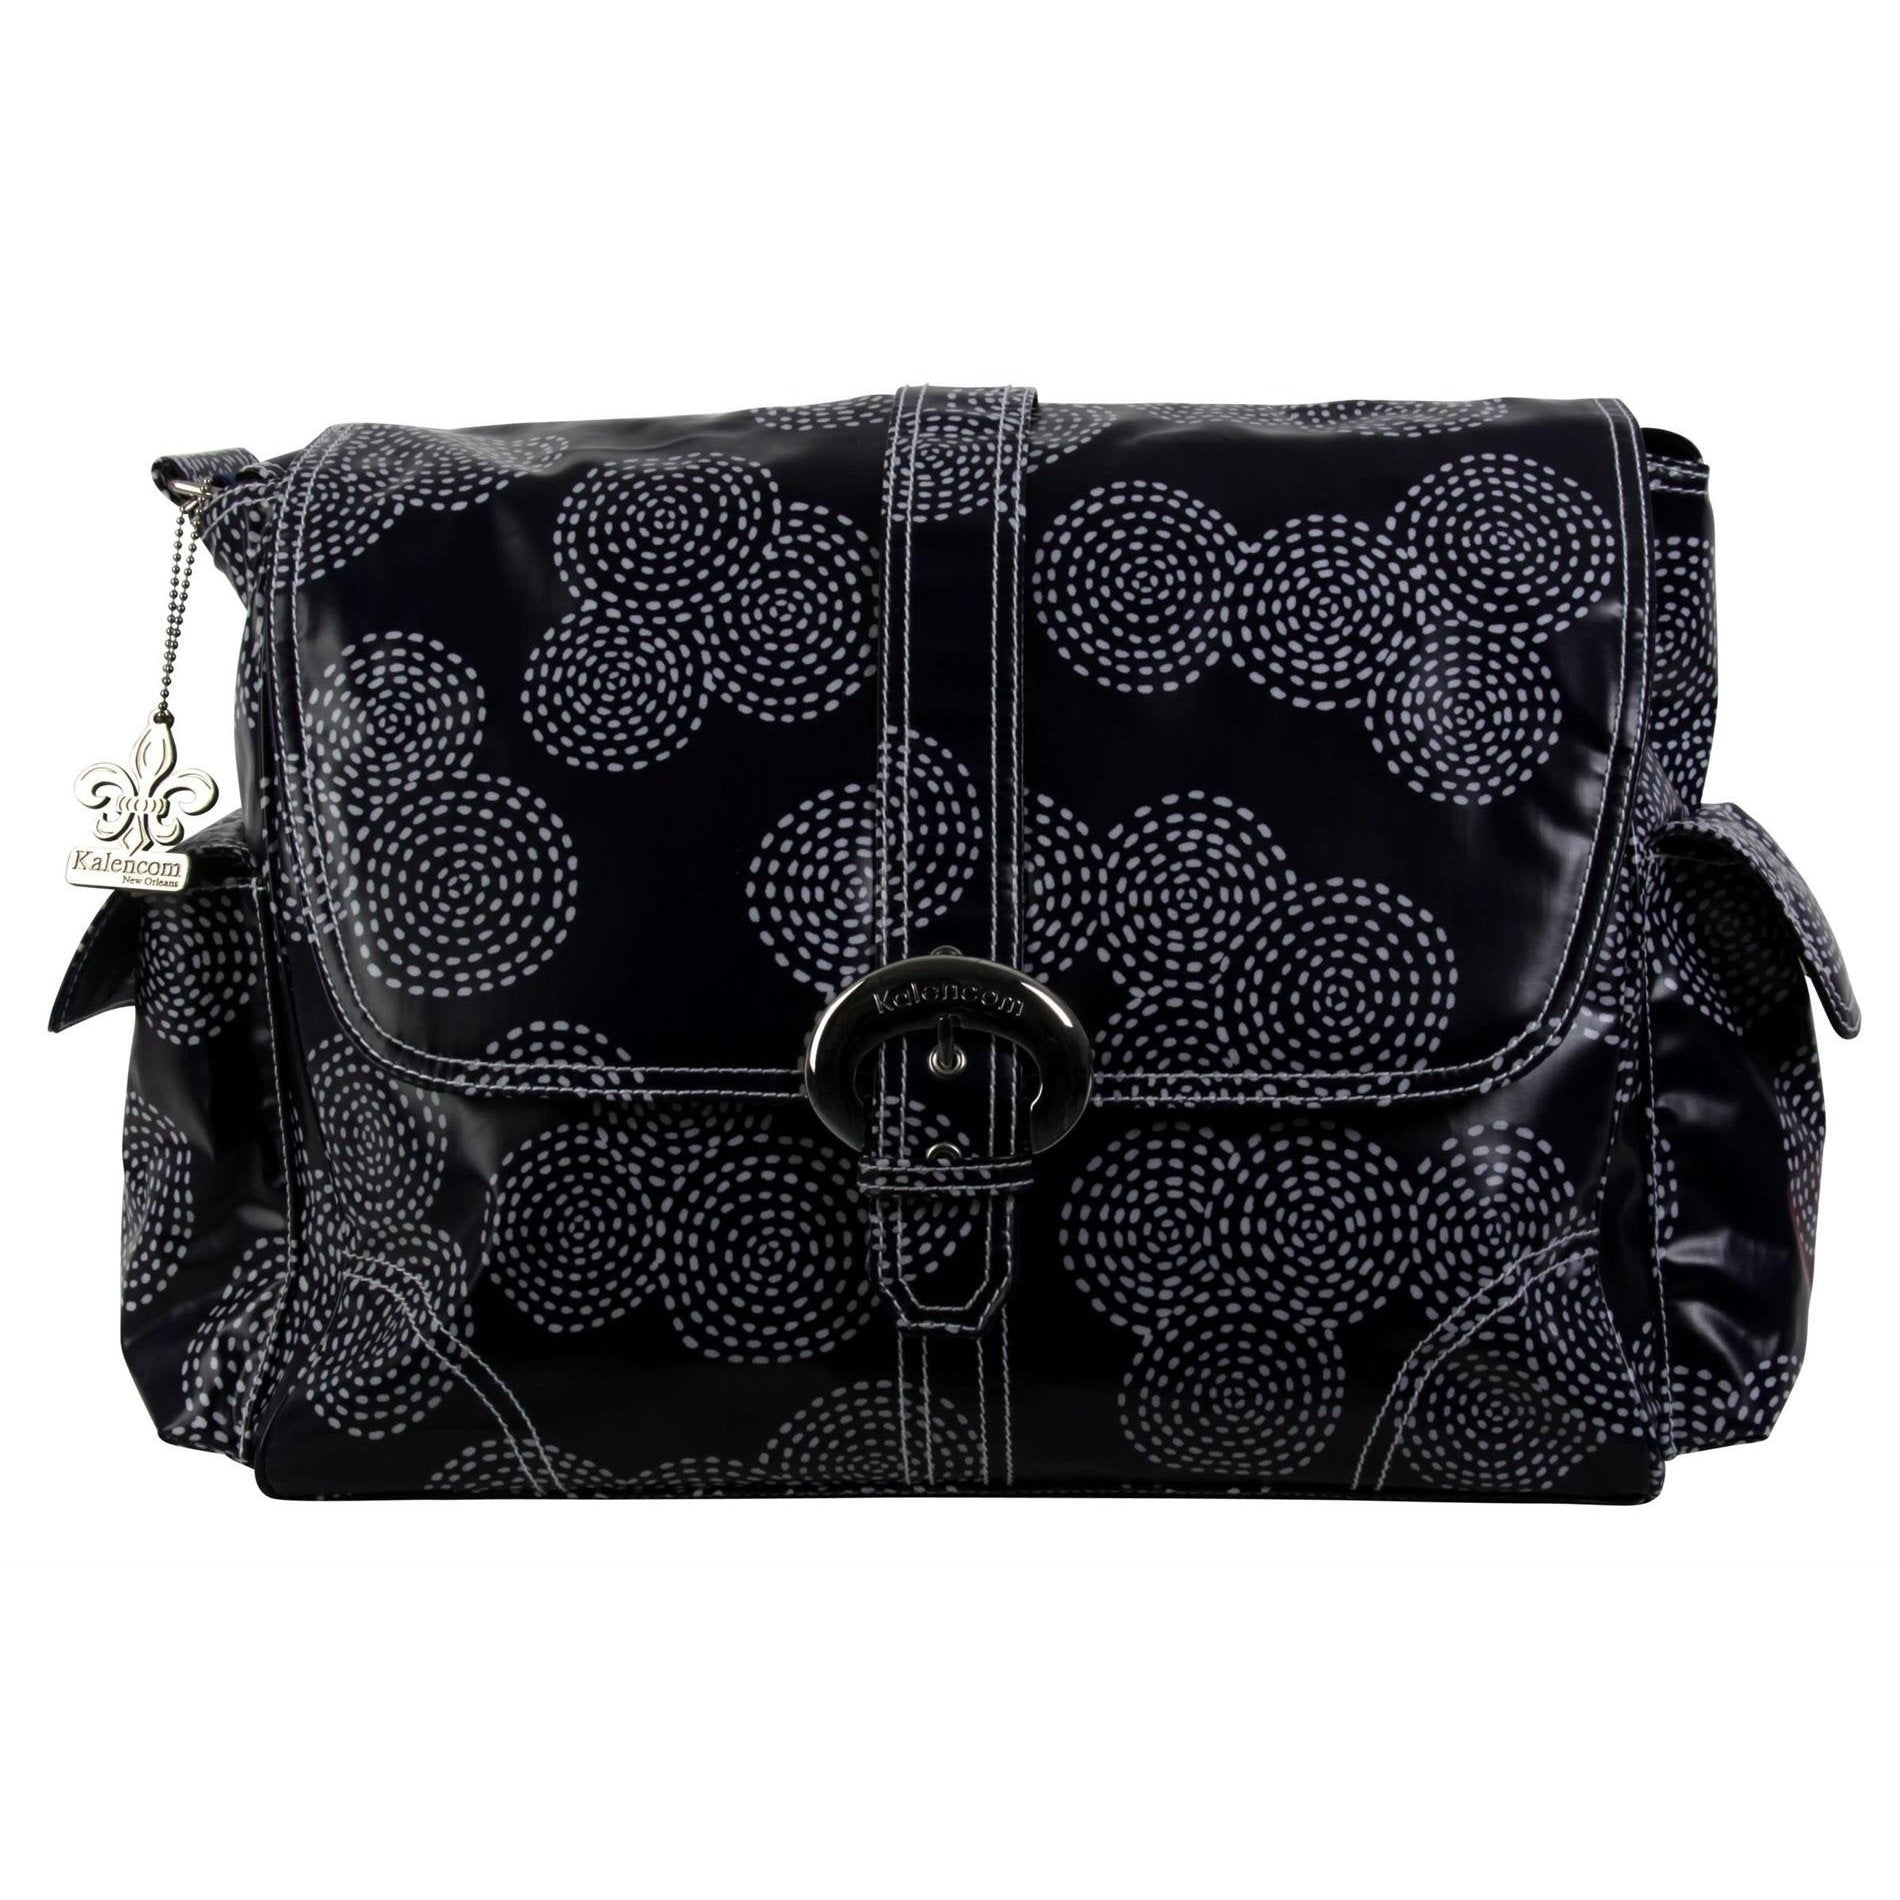 Stitches - Navy Matte Coated Buckle Diaper Bag | Style 2960 - Kalencom-Diaper Bags-Default-Jack and Jill Boutique